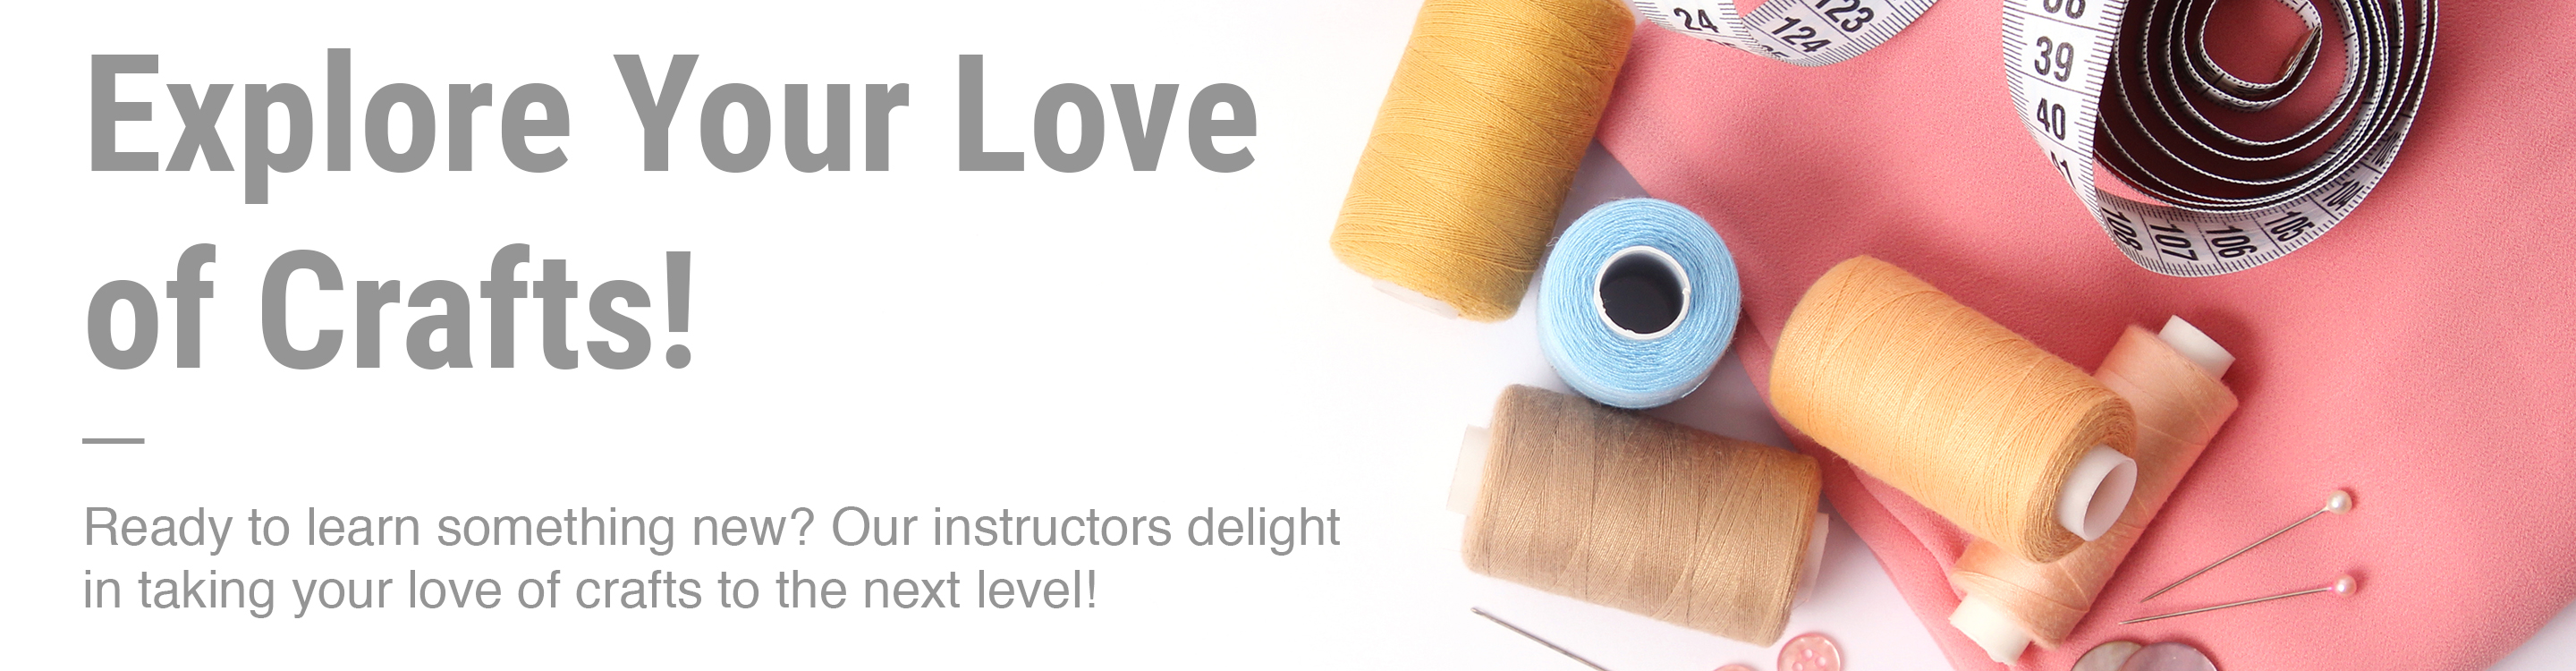 Explore your love of crafts! Ready to Learn Something New? Our ins